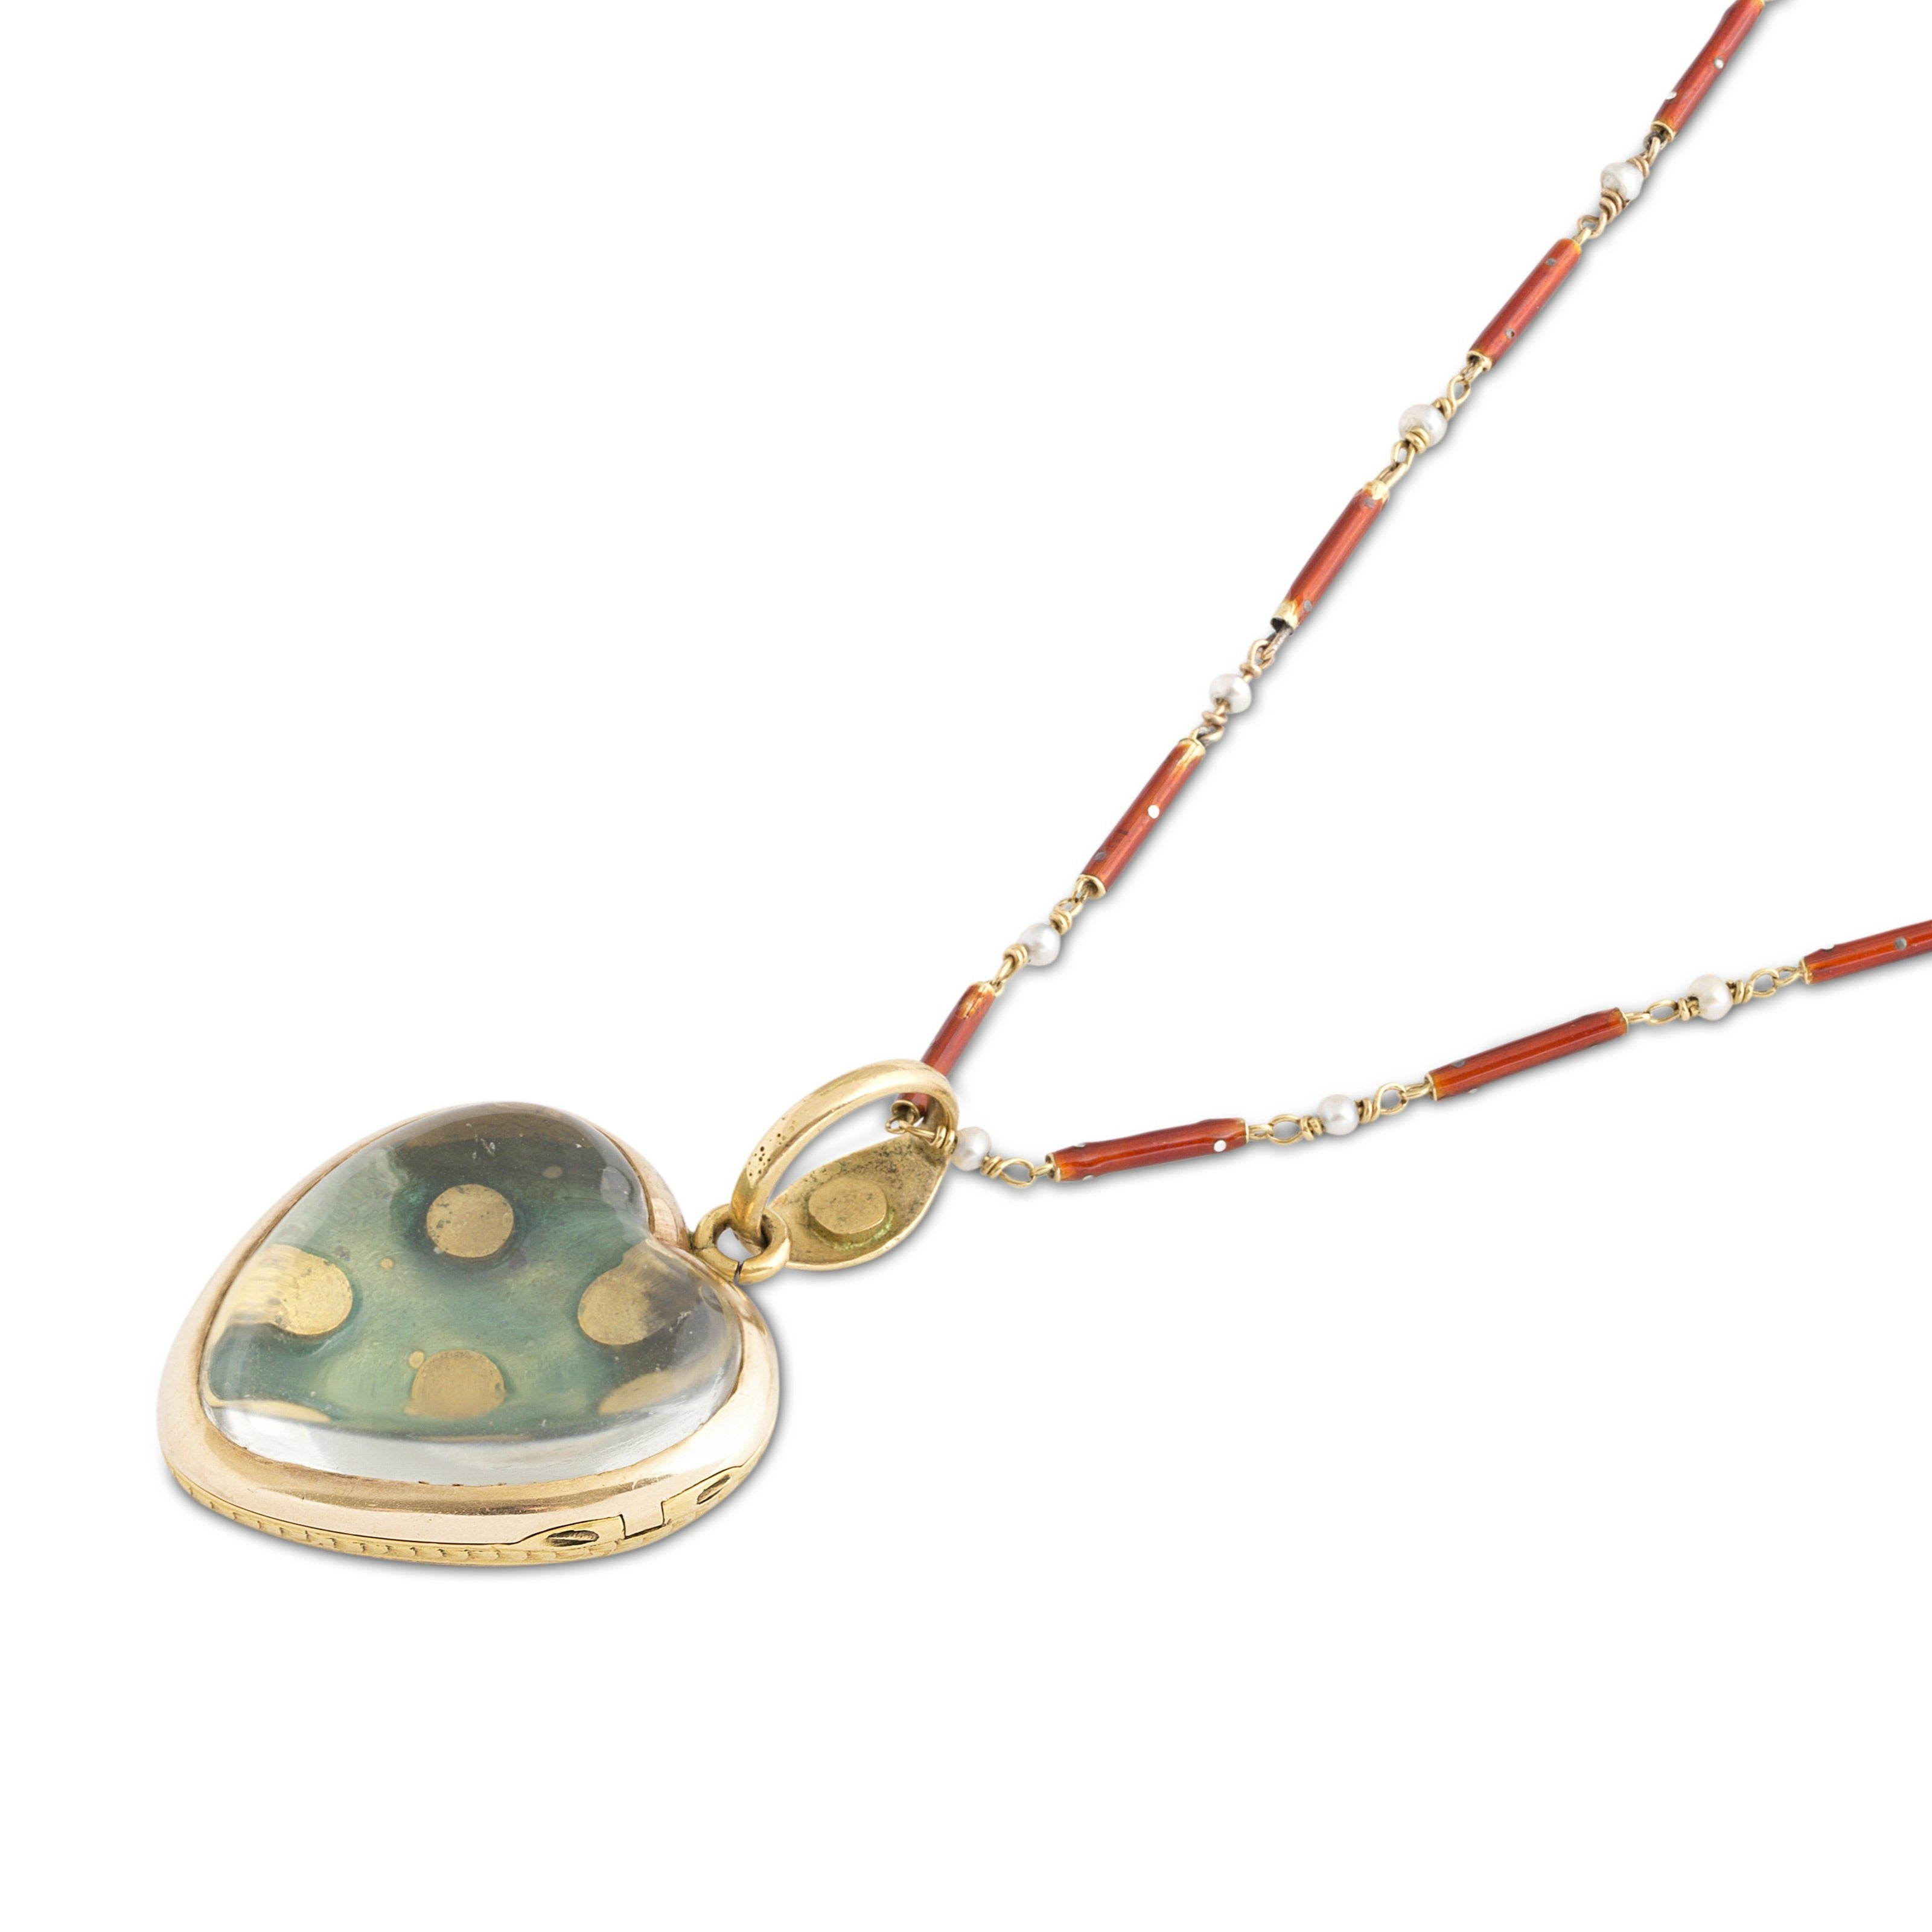 Victorian Guillouche Enamel, Pearl, and 14k Gold Heart Locket and Chain